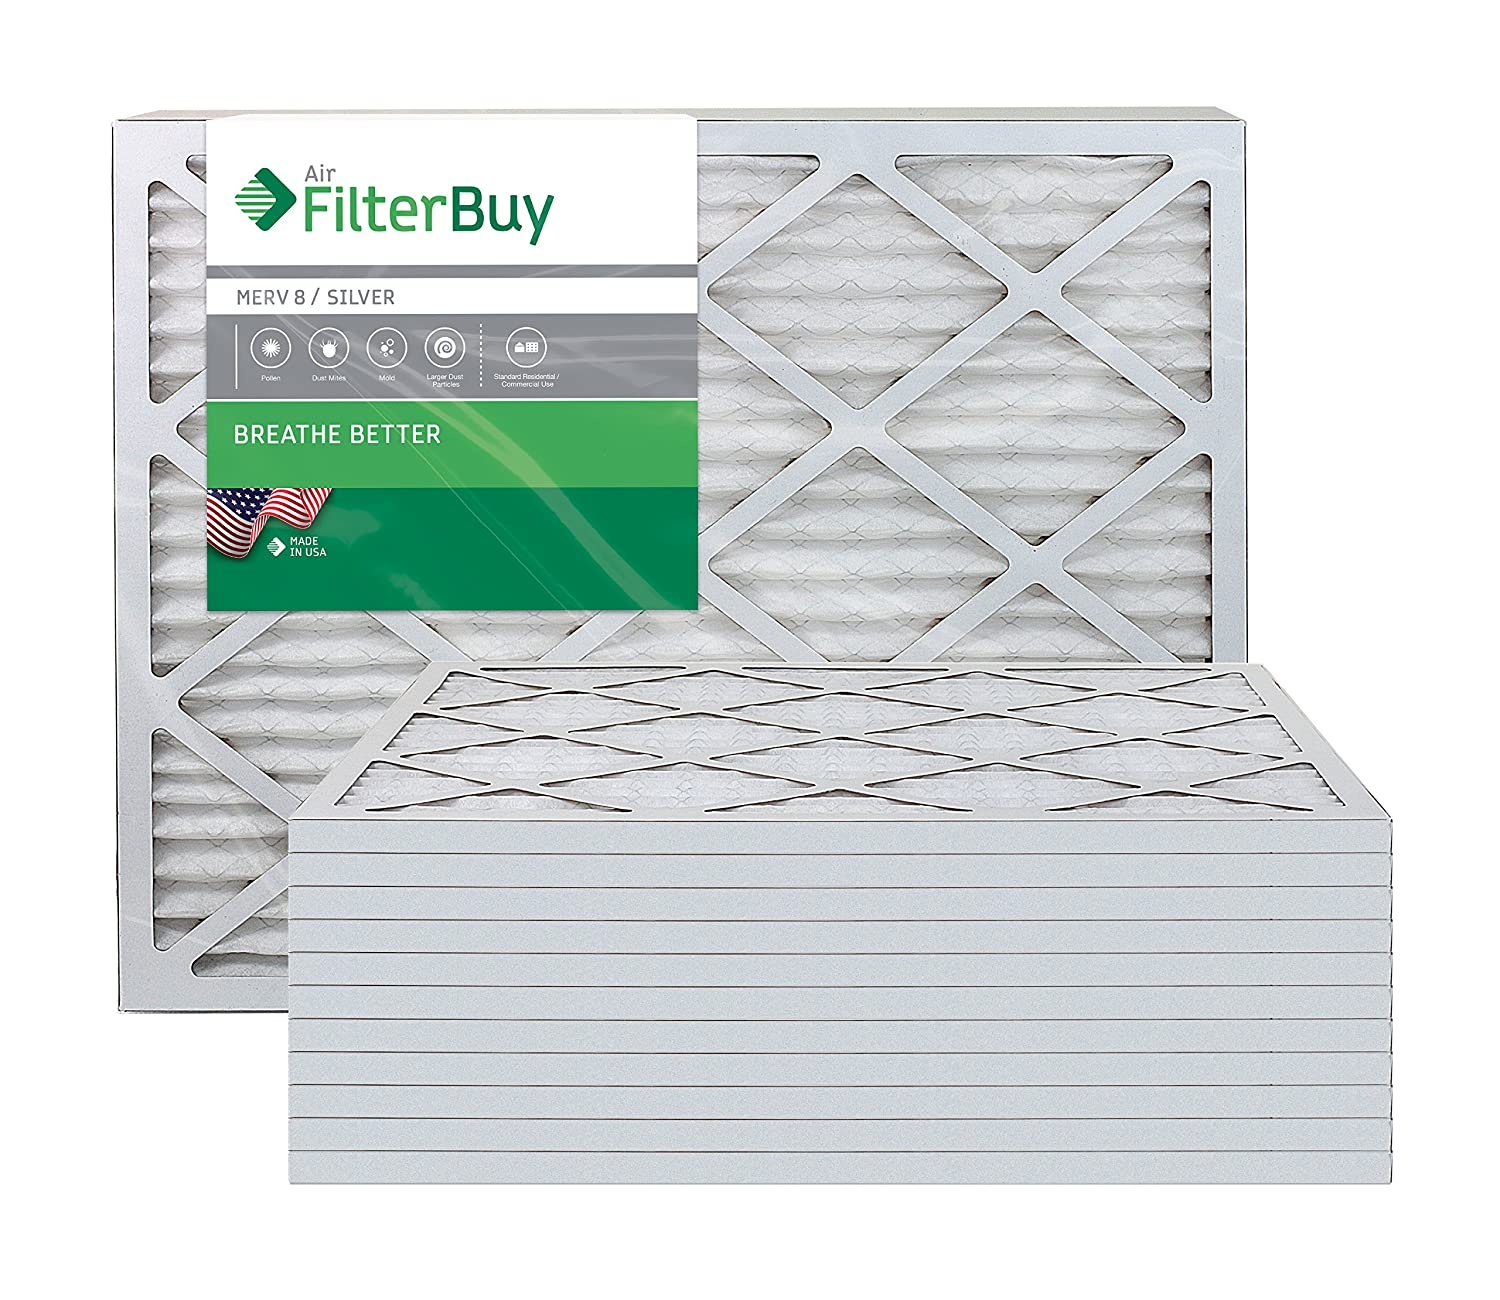 FilterBuy 20x30x1 MERV 8 Pleated AC Furnace Air Filter, (Pack of 12 Filters), 20x30x1 – Silver